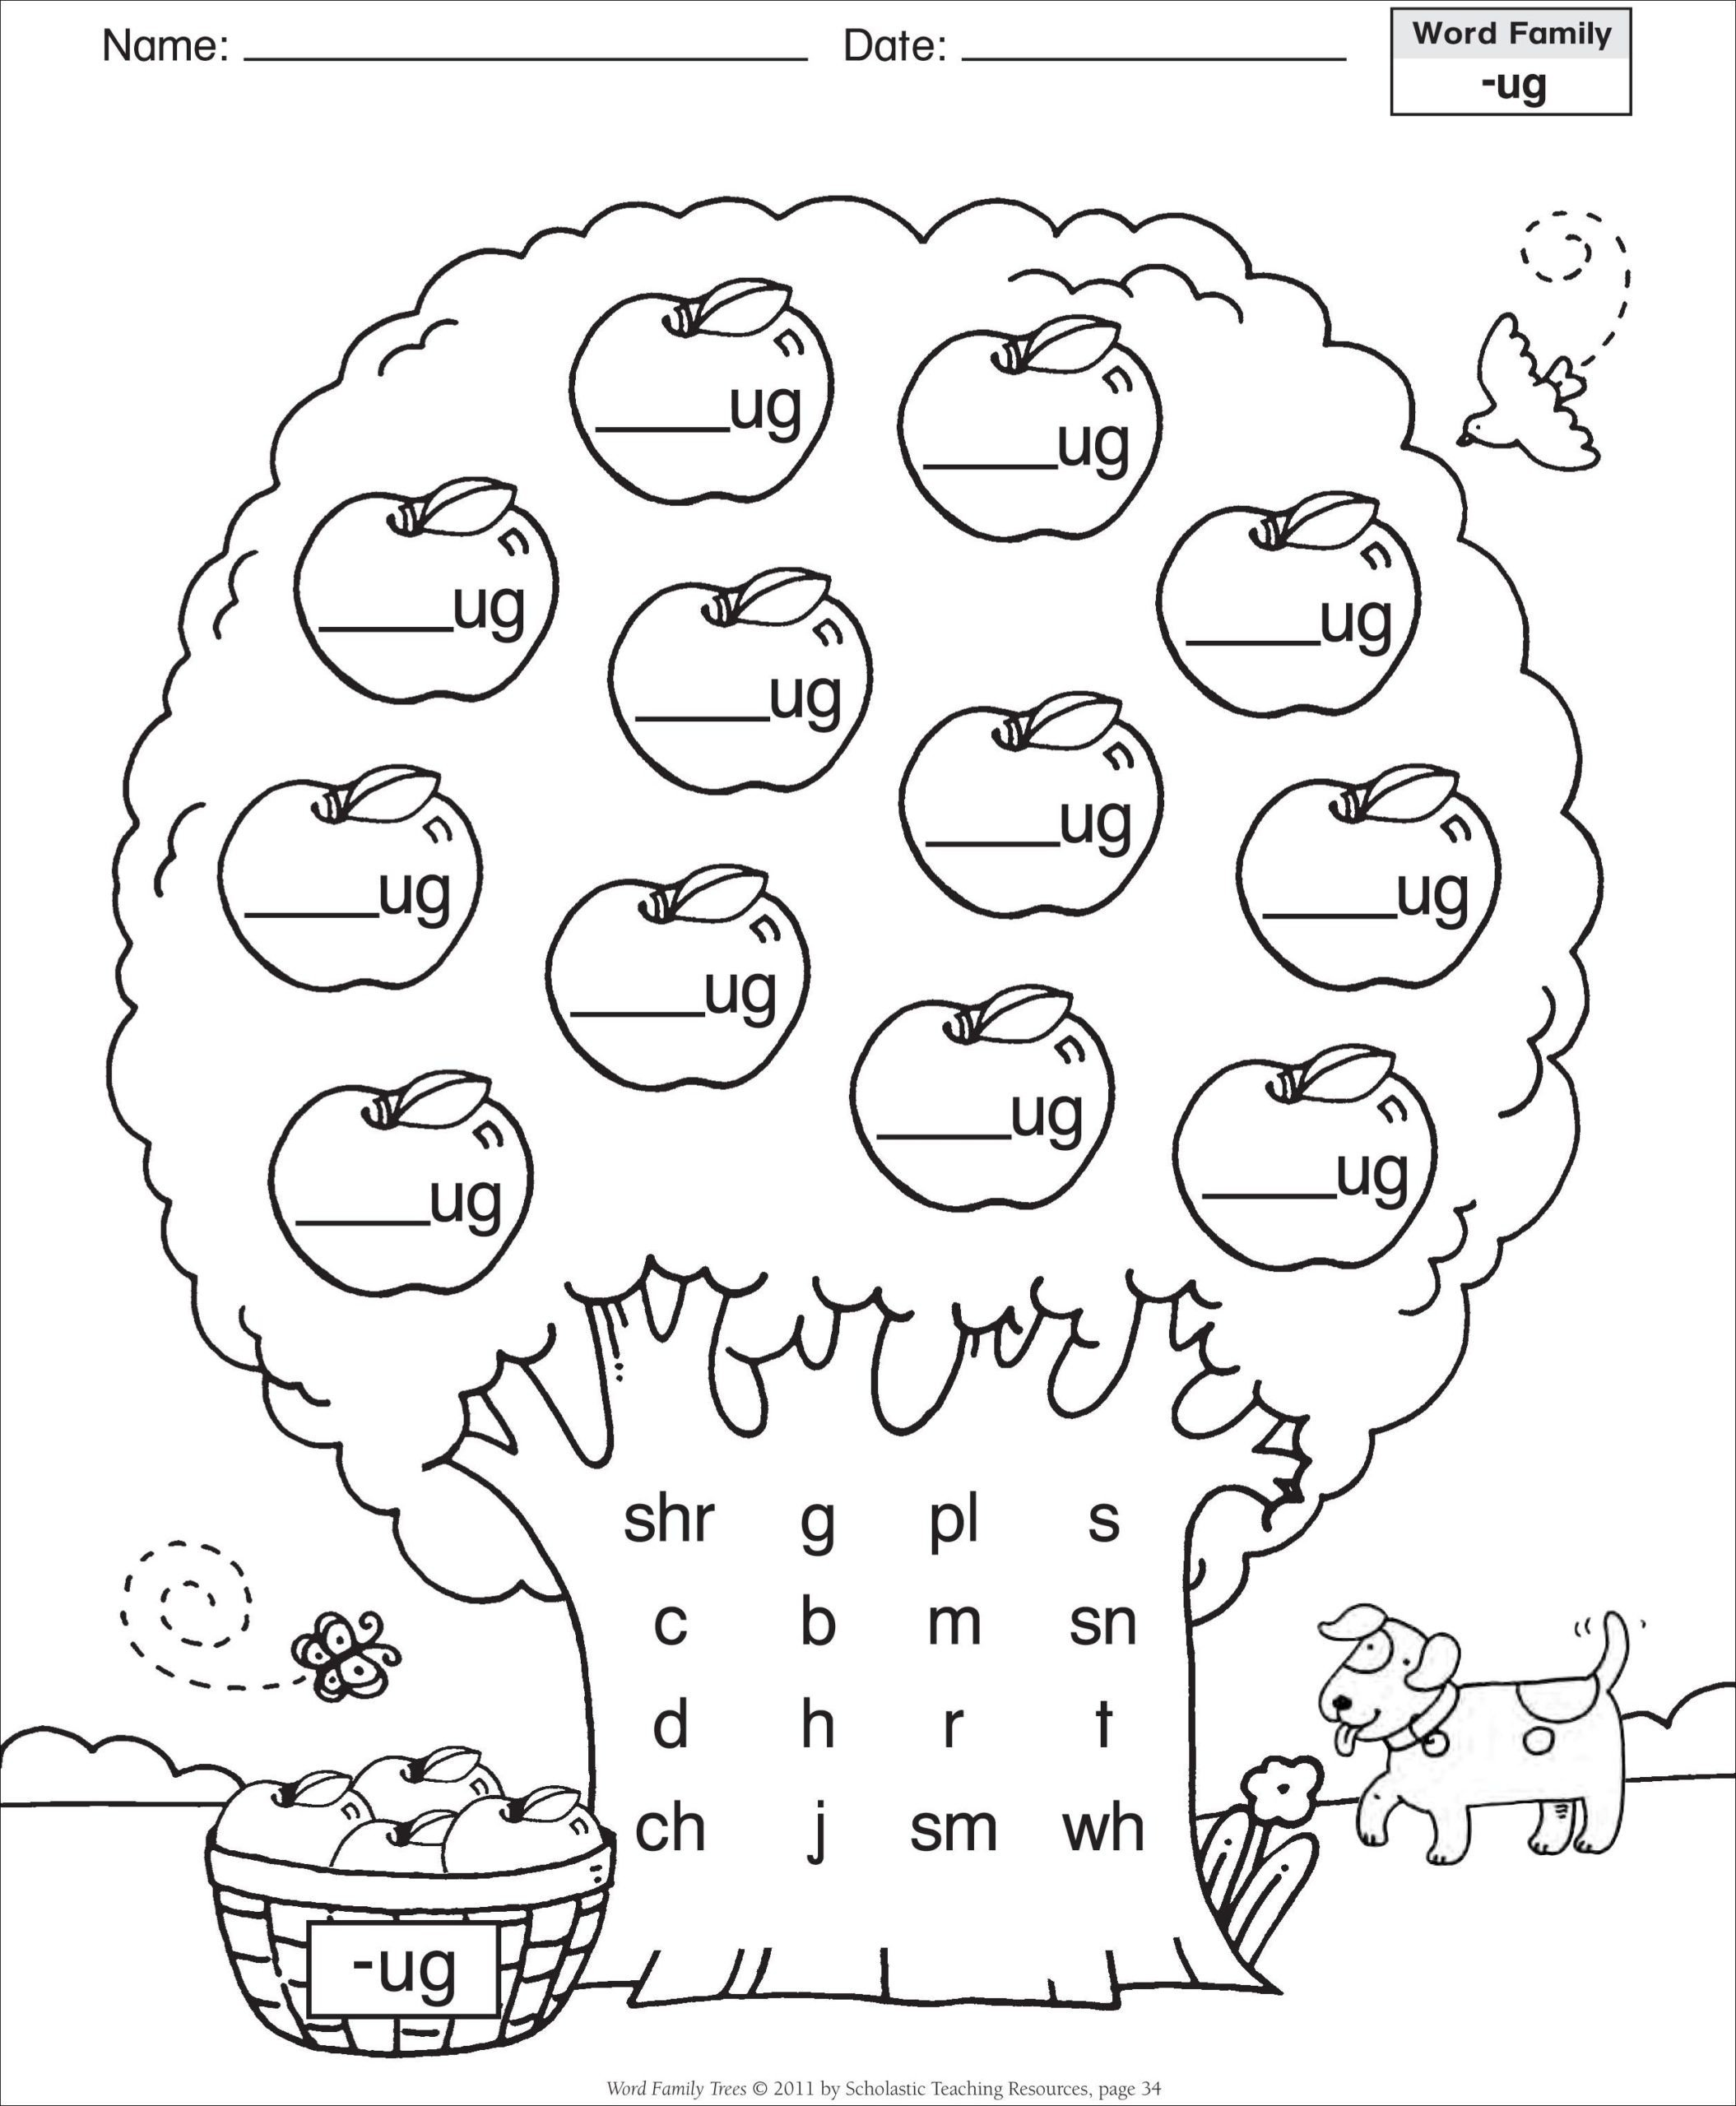 Cvc Words Worksheet Kindergarten Short Vowel Ug Word Family Tree Families Reading Cvc Words